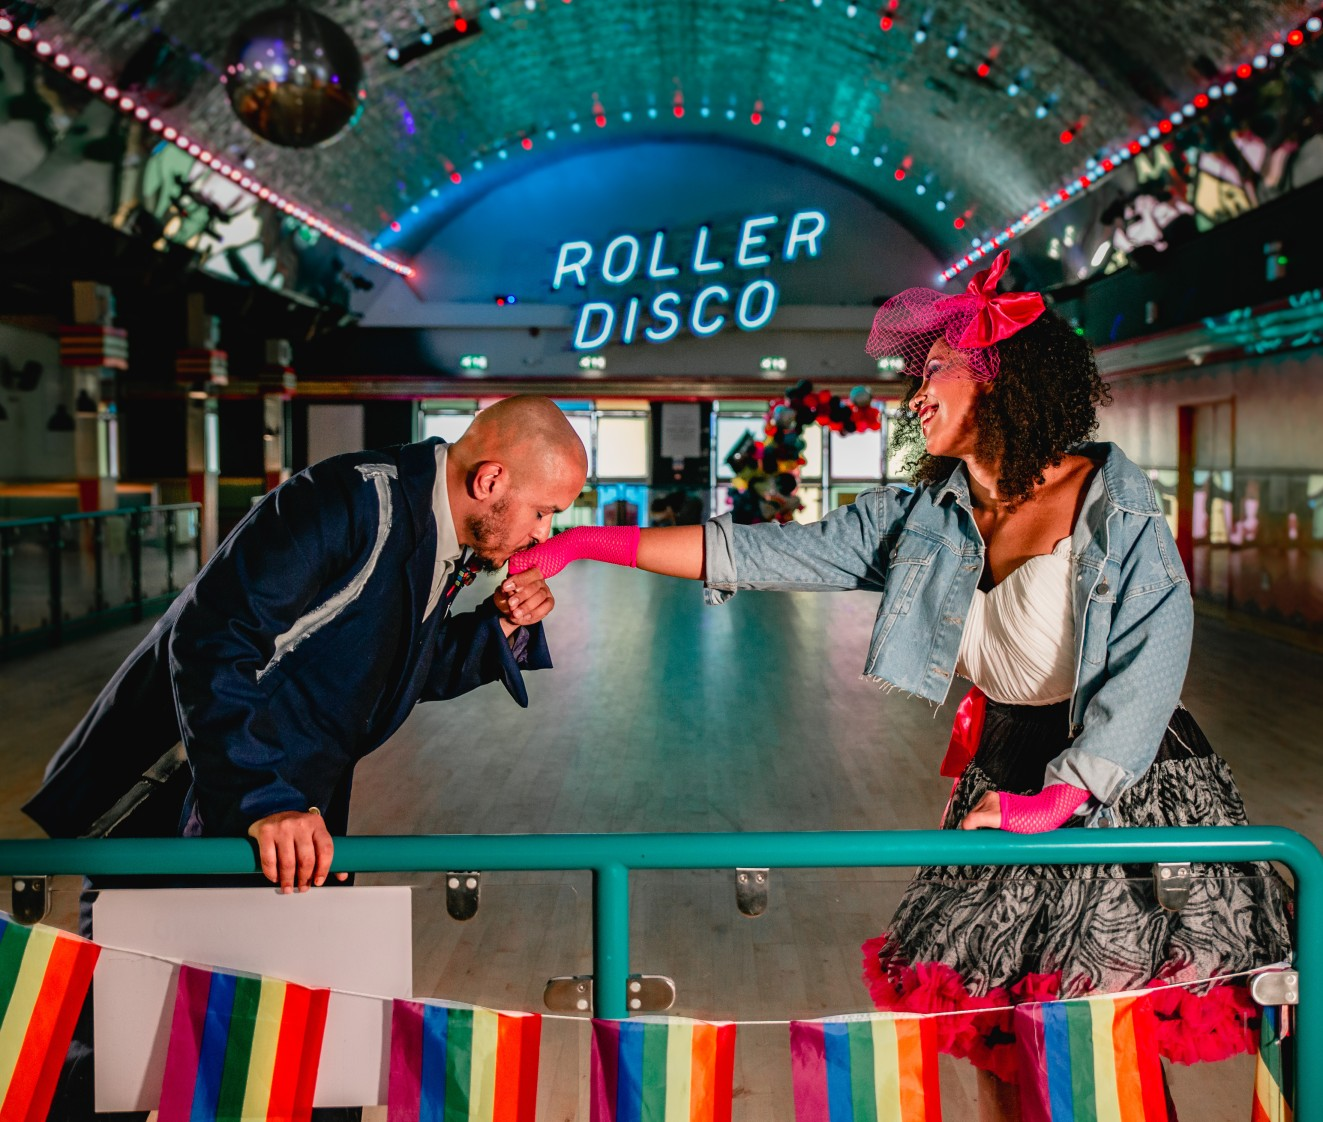 roller disco wedding - 80s themed wedding - retro wedding wear - quirky wedding venue - margate wedding venue